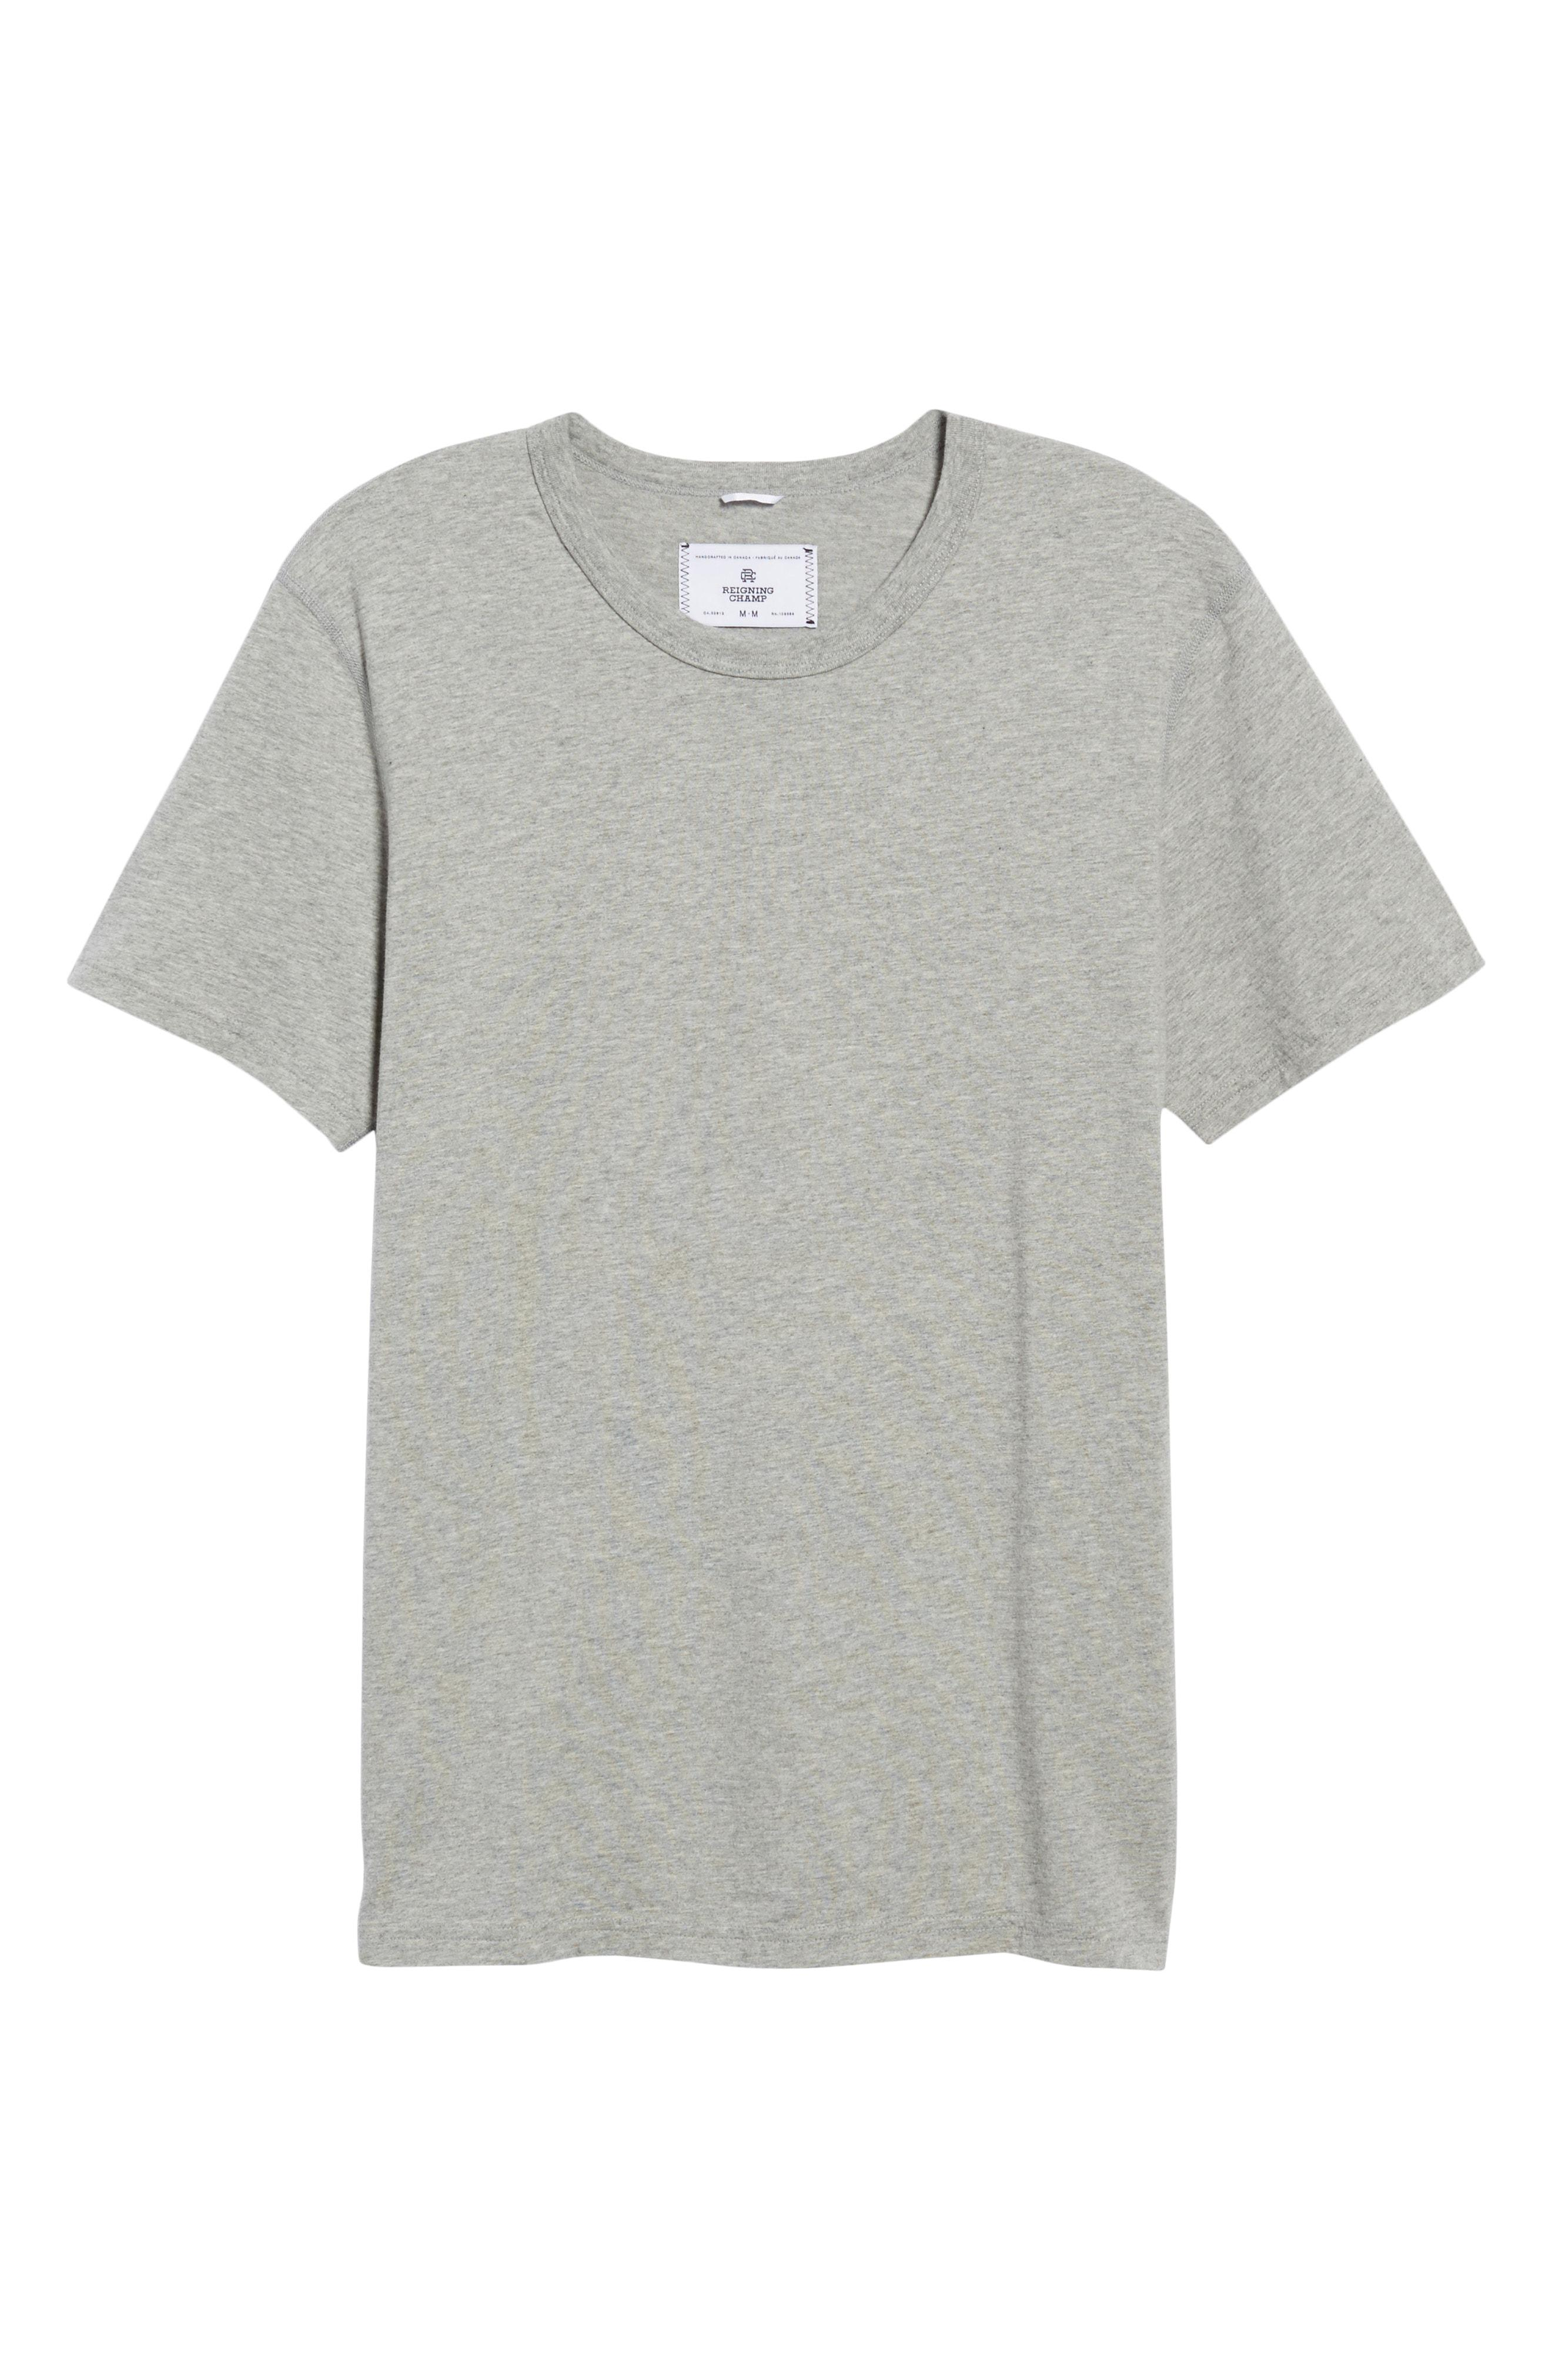 a5aa7a2df7 Lyst - Reigning Champ Short Sleeve Crewneck T-shirt in Gray for Men